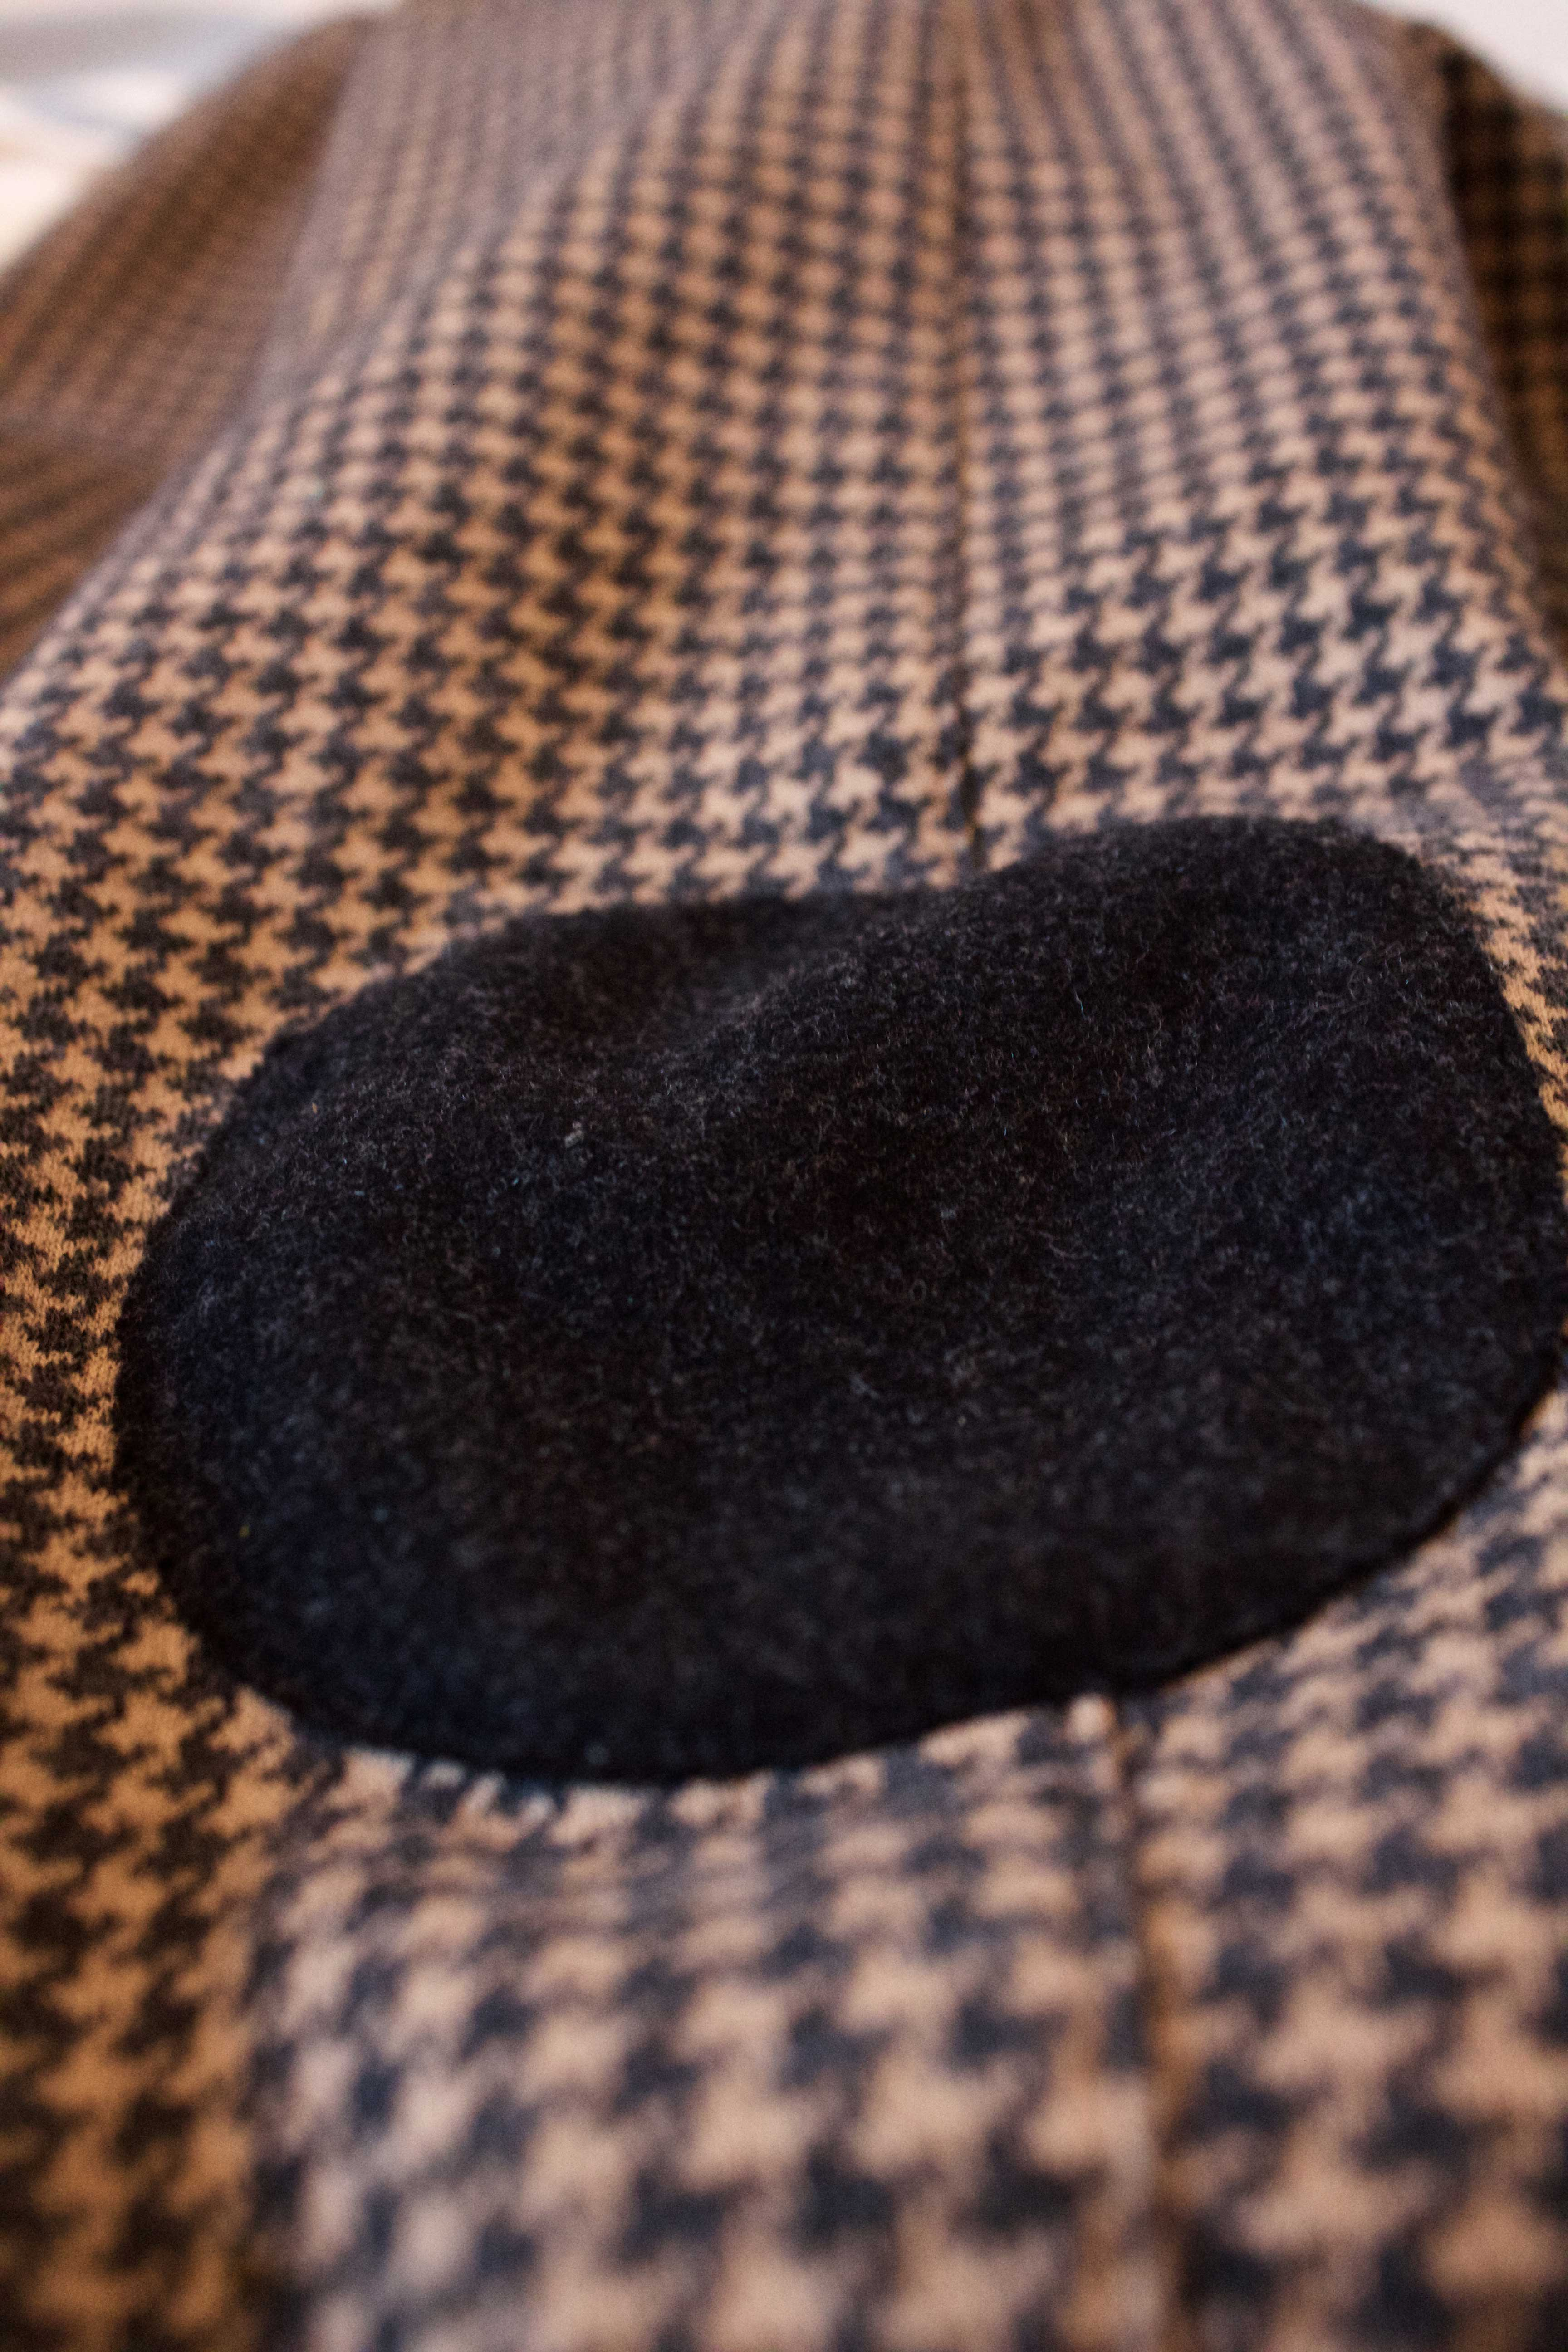 making your own clothes with elbow patches and houndstooth